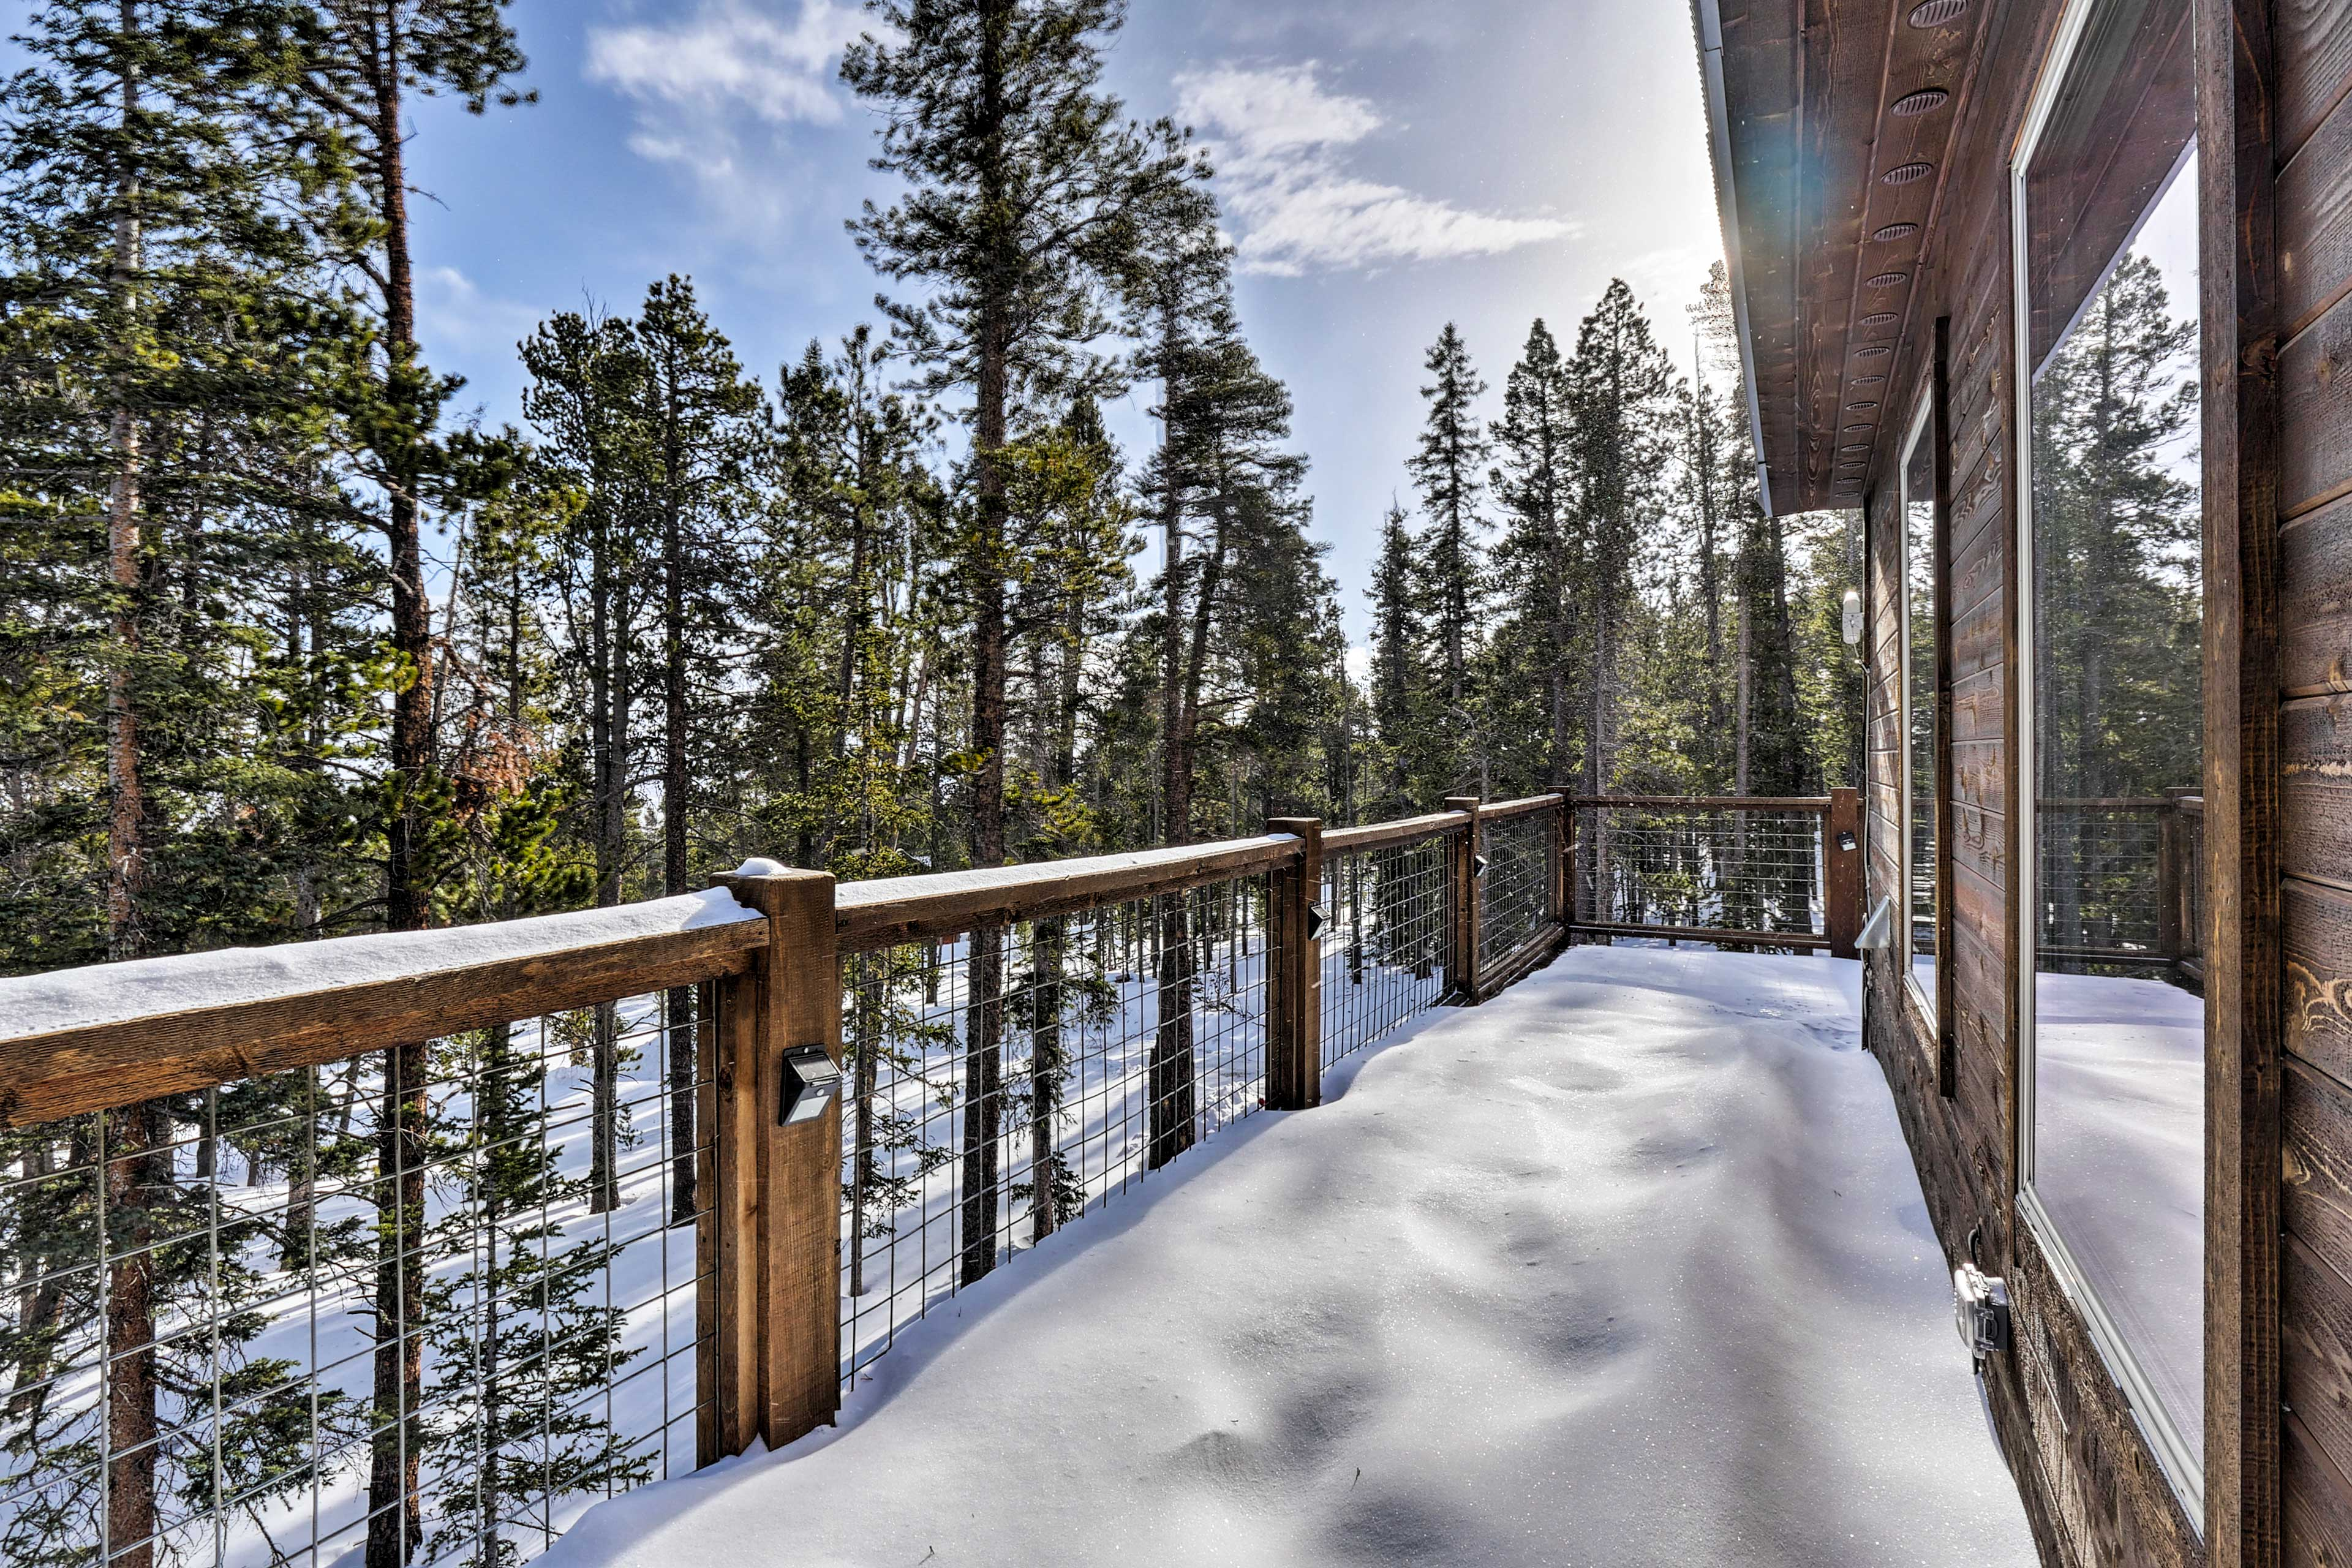 The deck offers great view of the surrounding mountains.